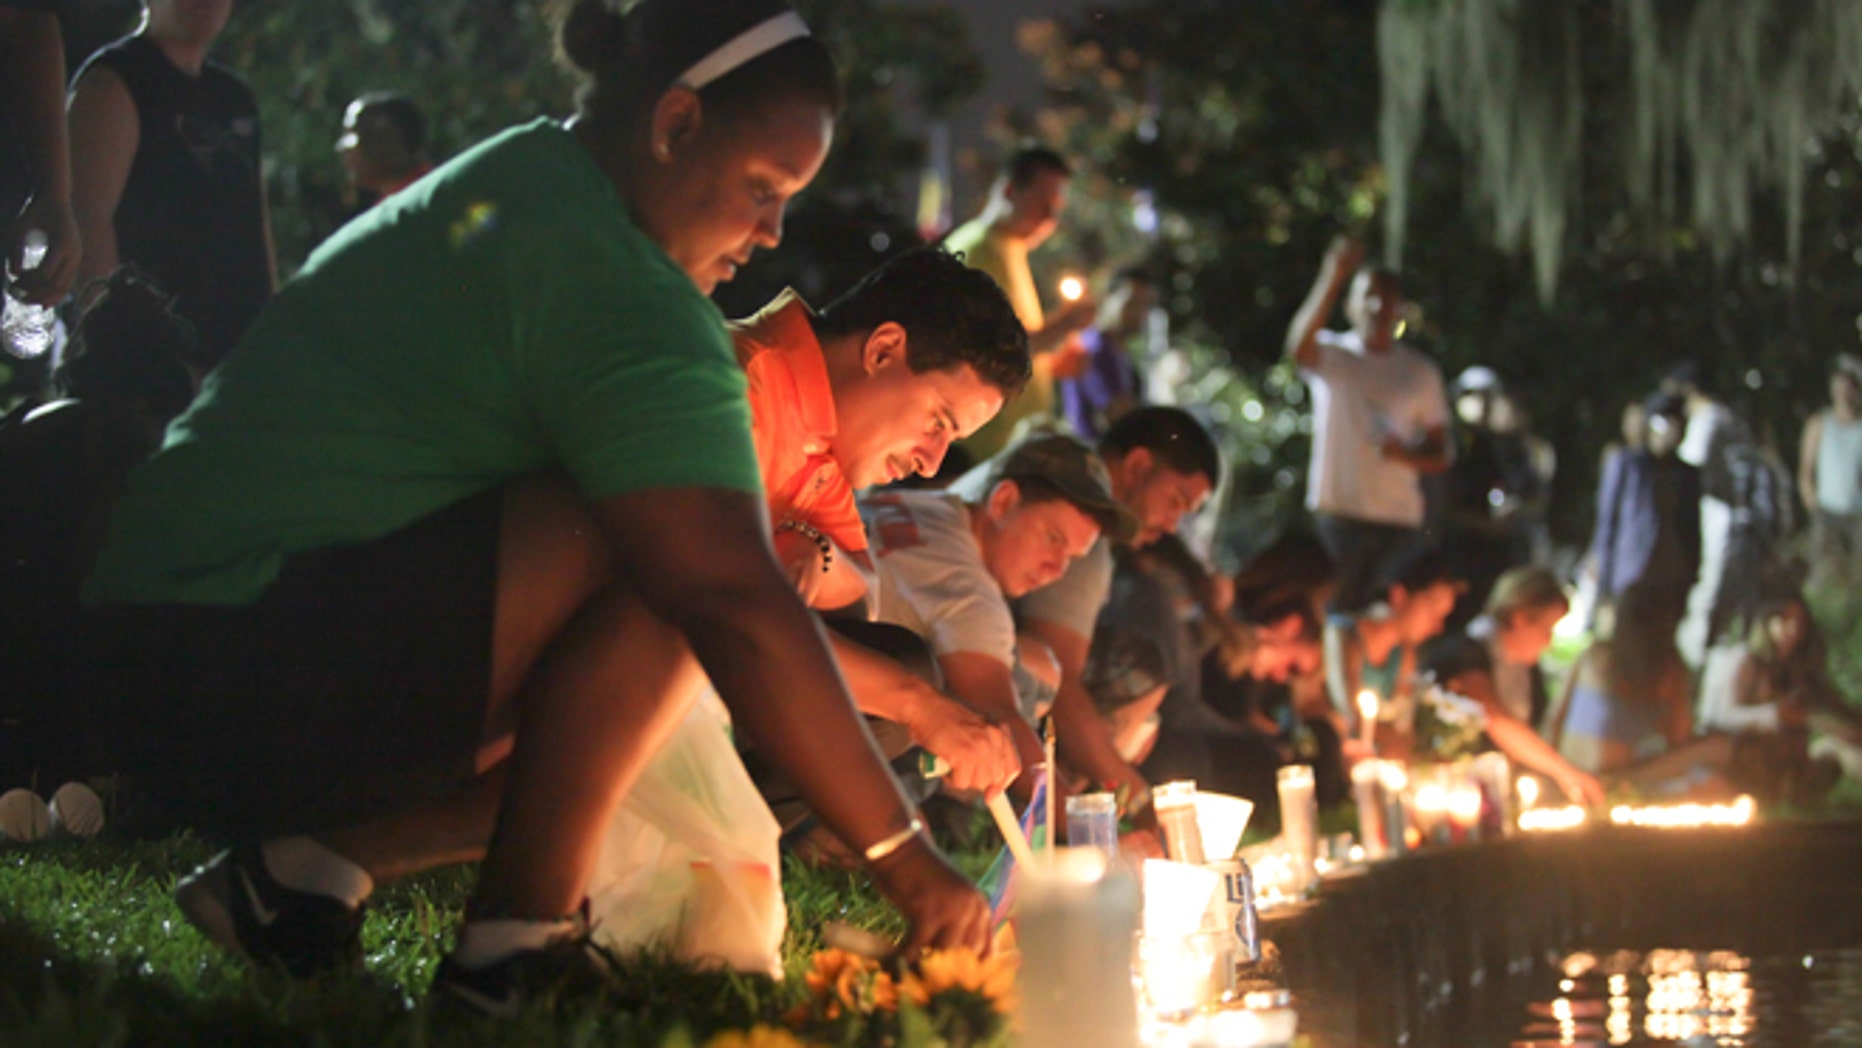 Wendy Frias, from left, and Hector Silva light candles along Lake Eola in Orlando, Sunday, June 12, 2016. The New York natives have made Orlando their home in recent years and came to the vigil for the victims of the Pulse night club tragedy.